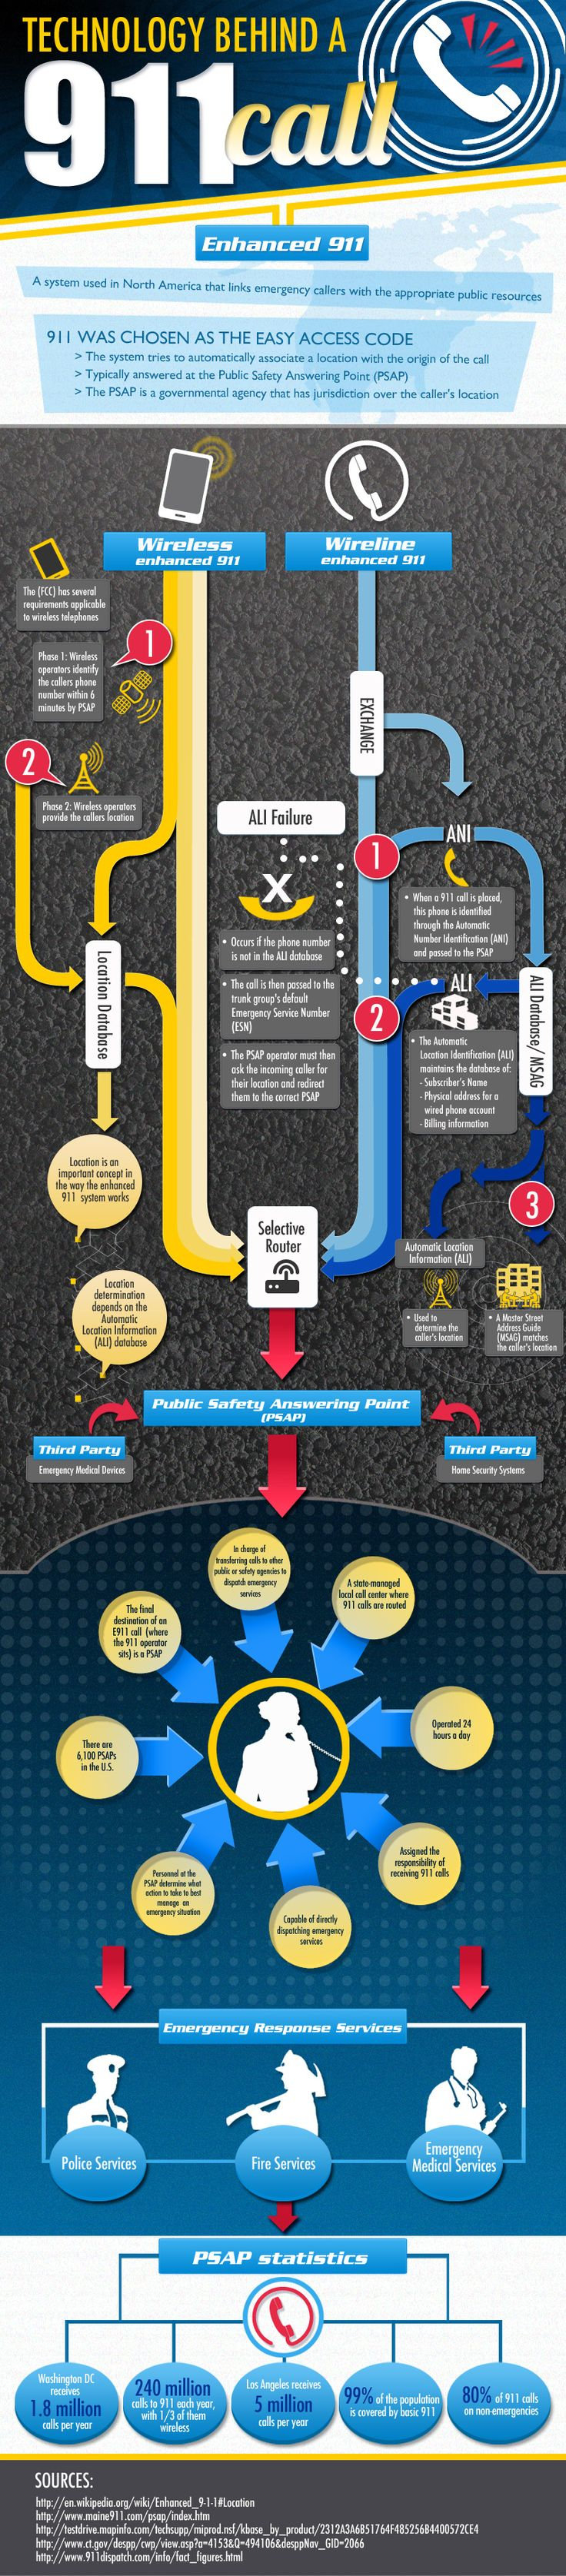 Ever wonder how a 911 call works? This infographic explains it! The technology behind enhanced 911